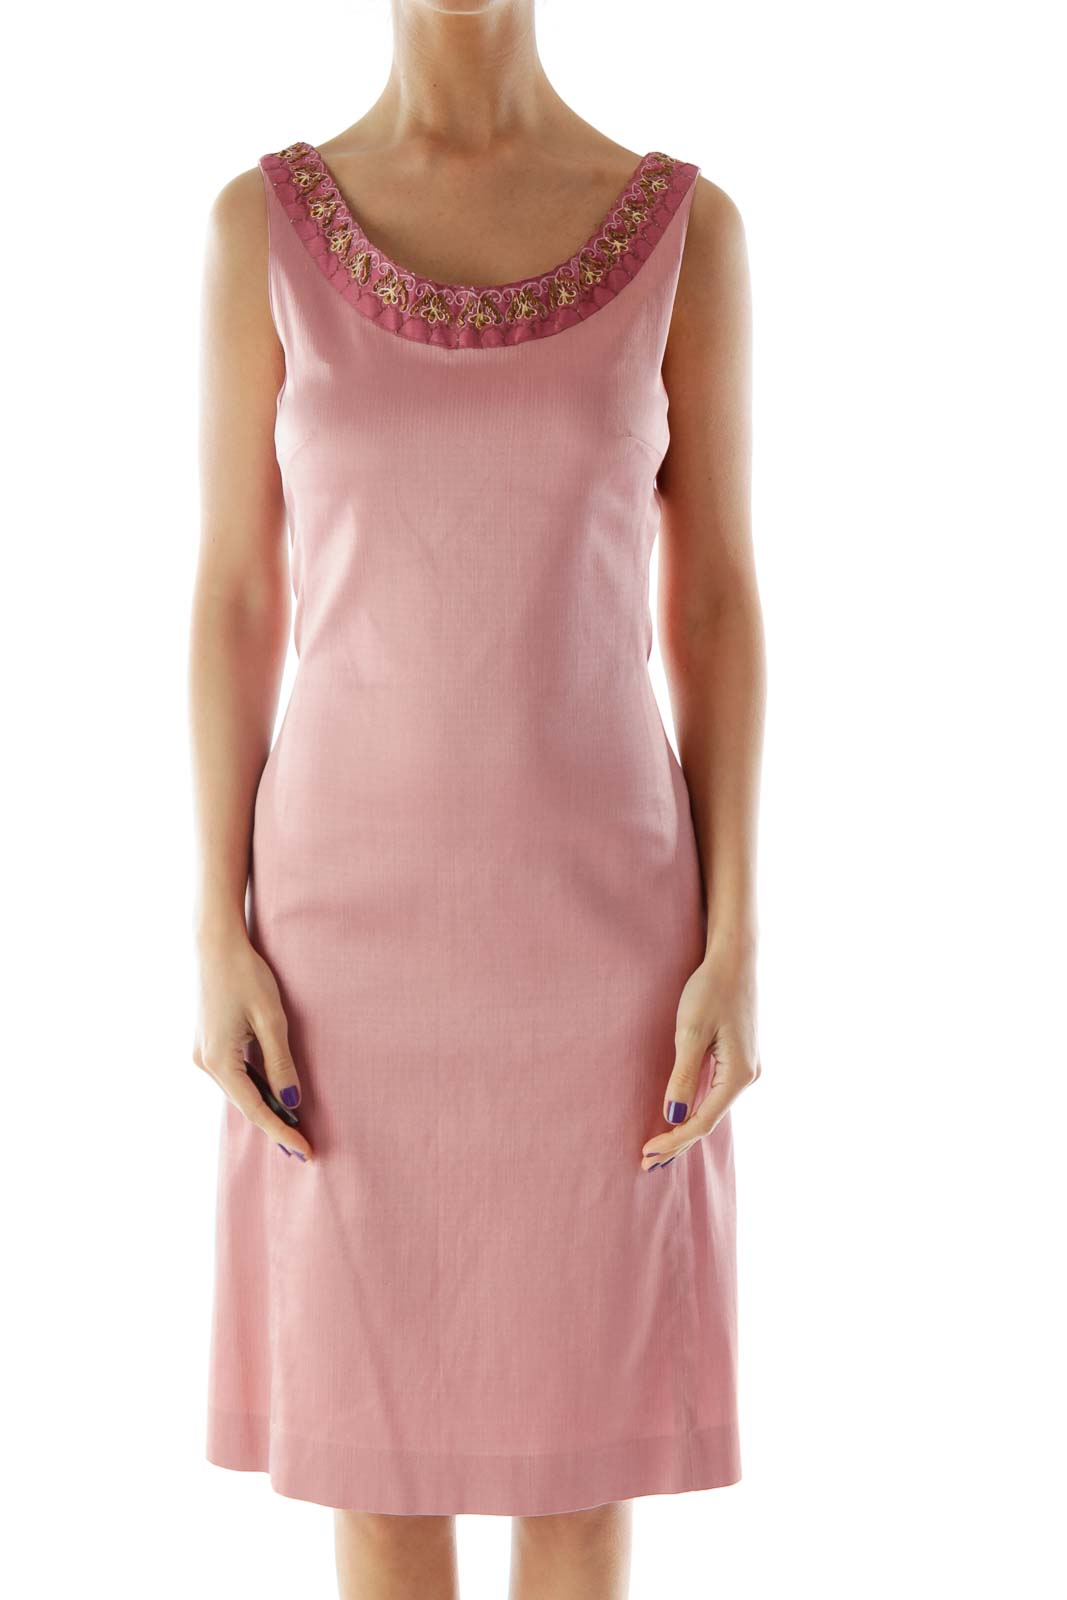 Pink Beaded Embroidered Dress Front